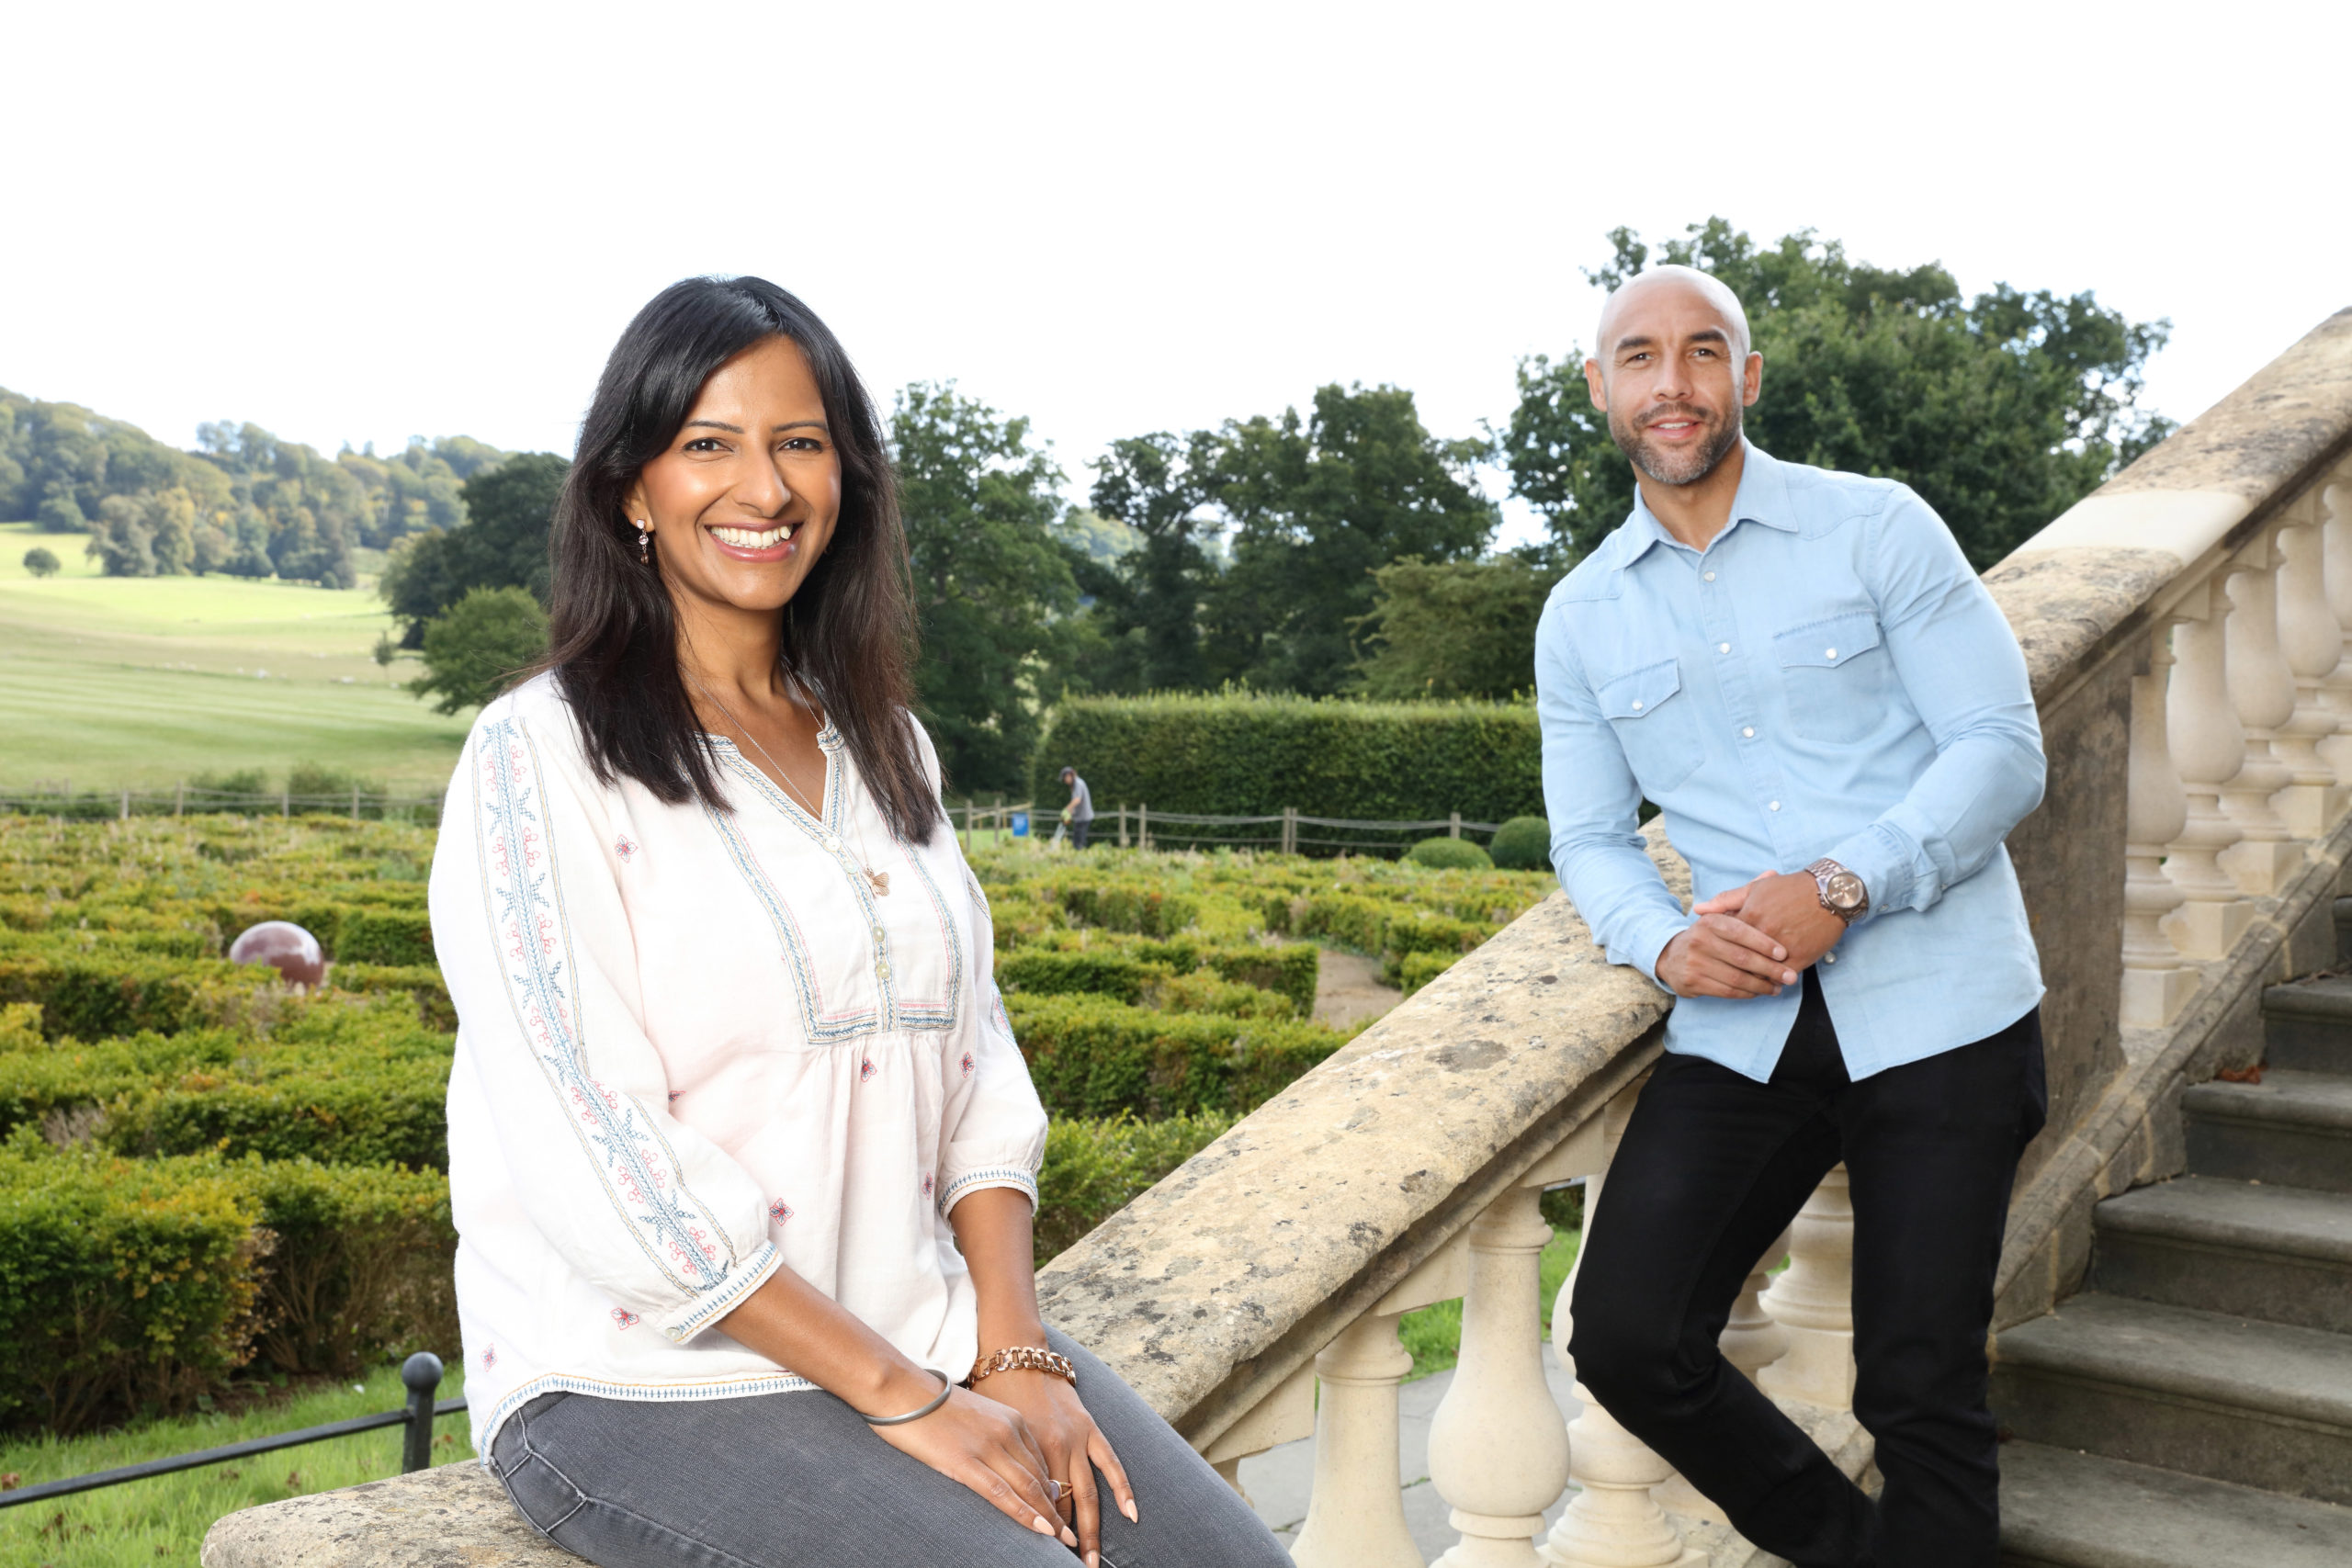 Ranvir Singh and Alex Beresford host All Around Britain